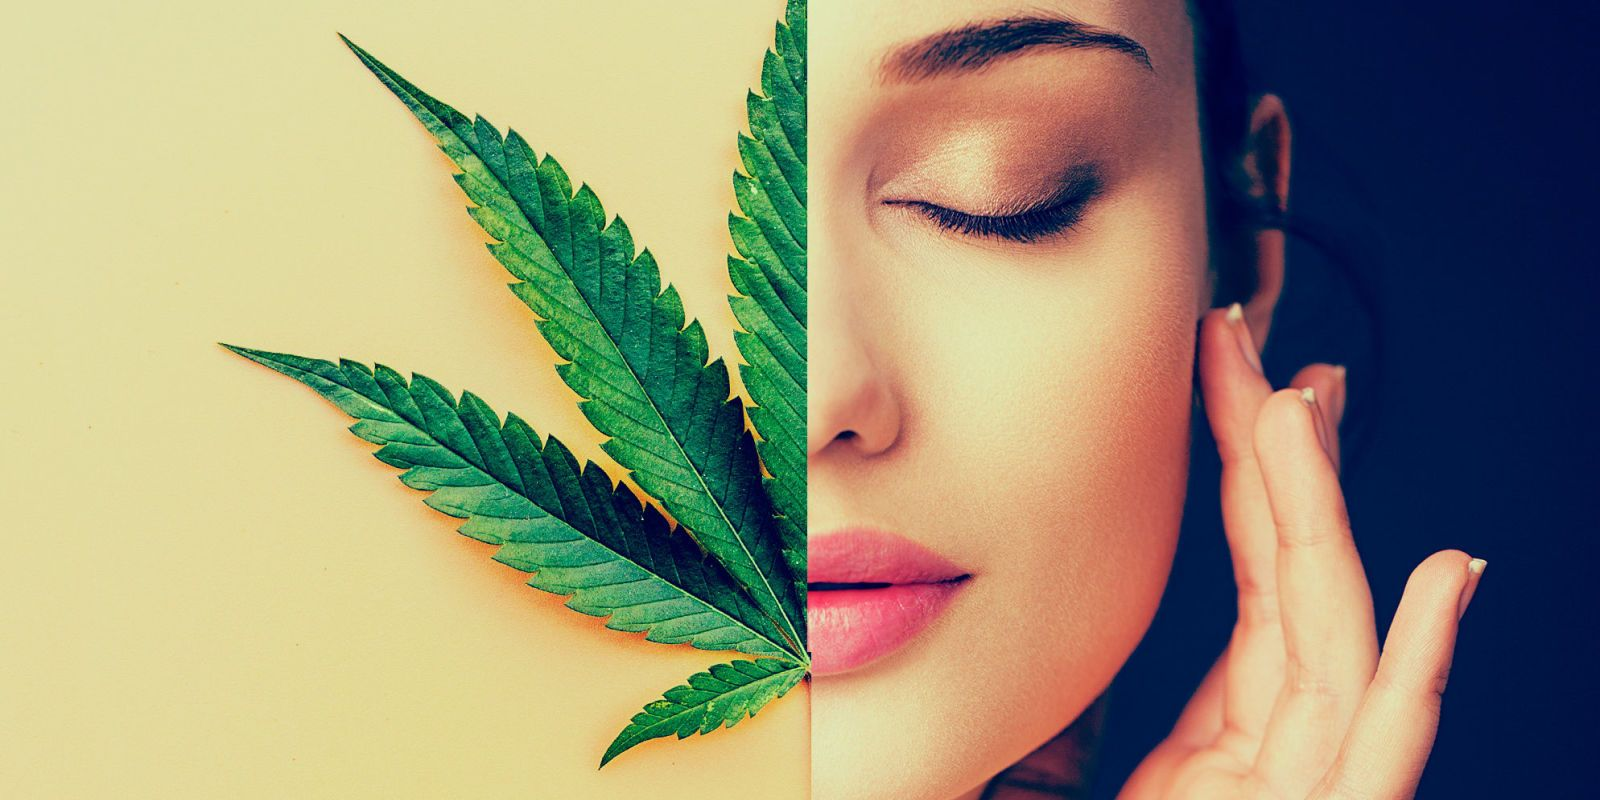 Does weed give you pimples